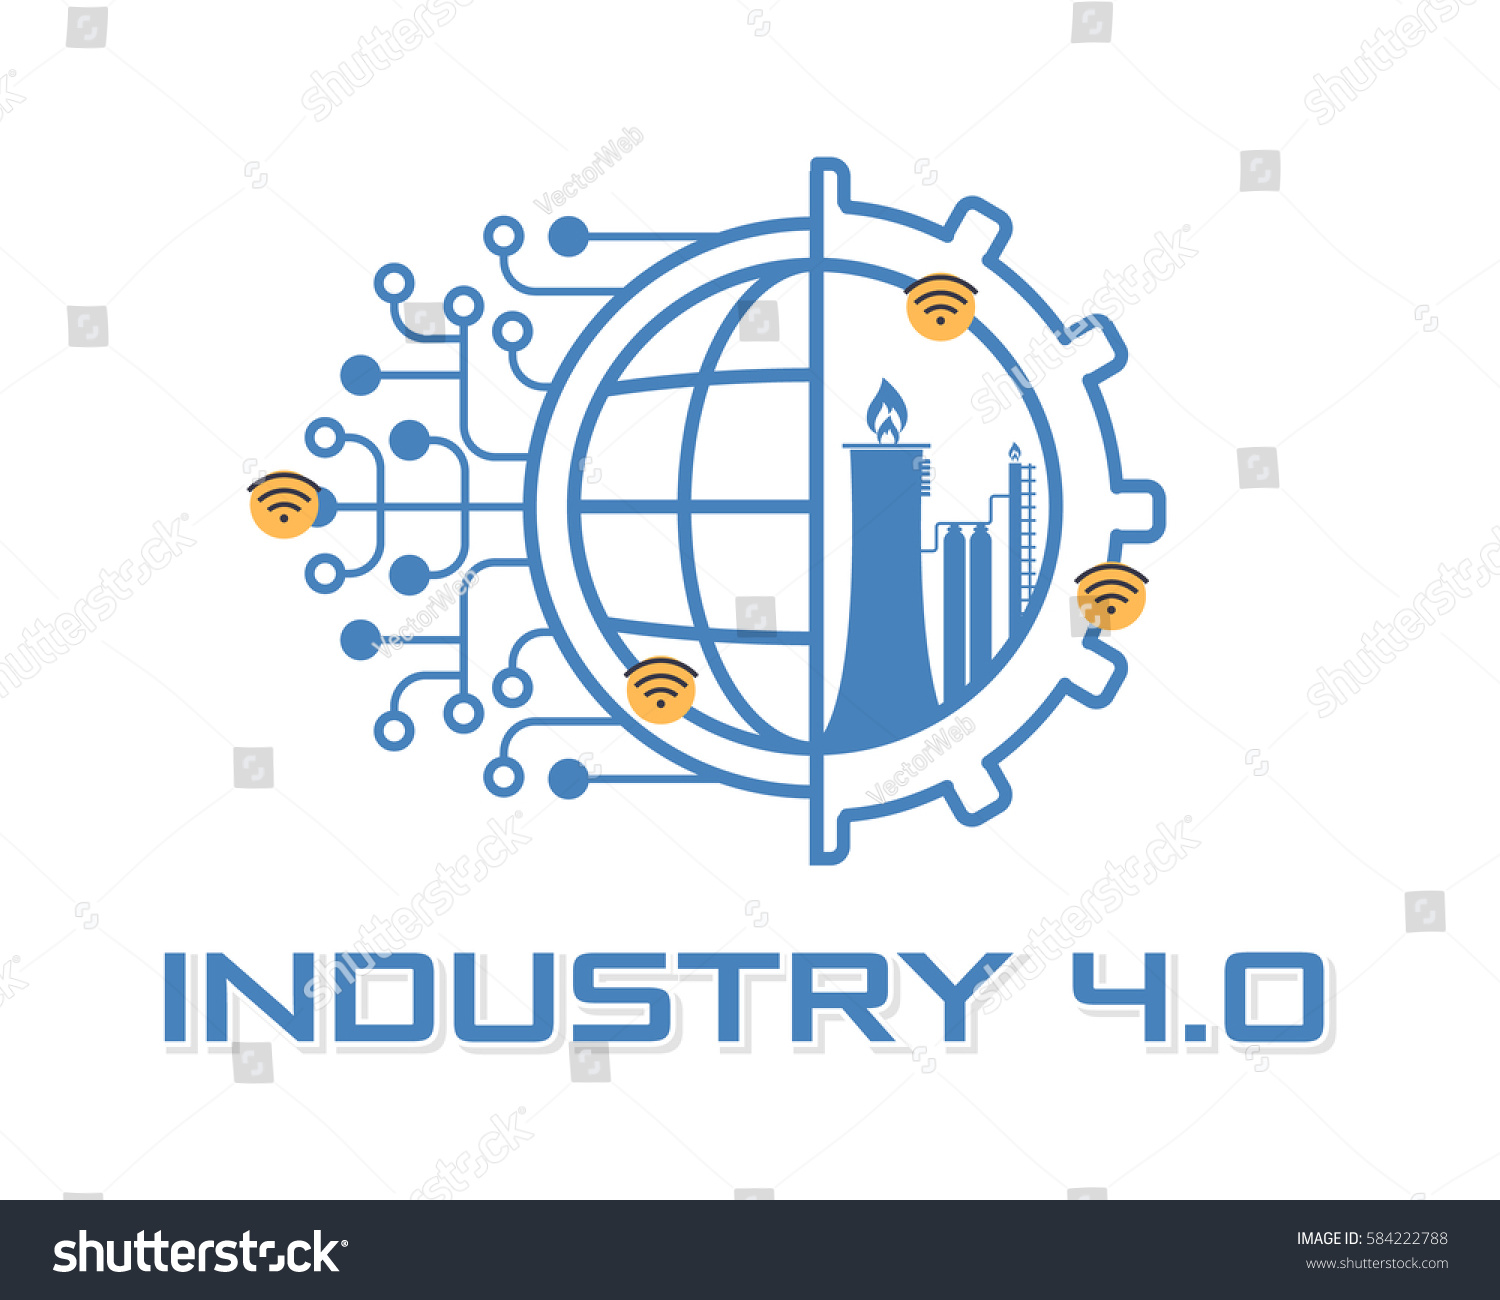 Industry 40 Concept Business Control Logo Stock Vector